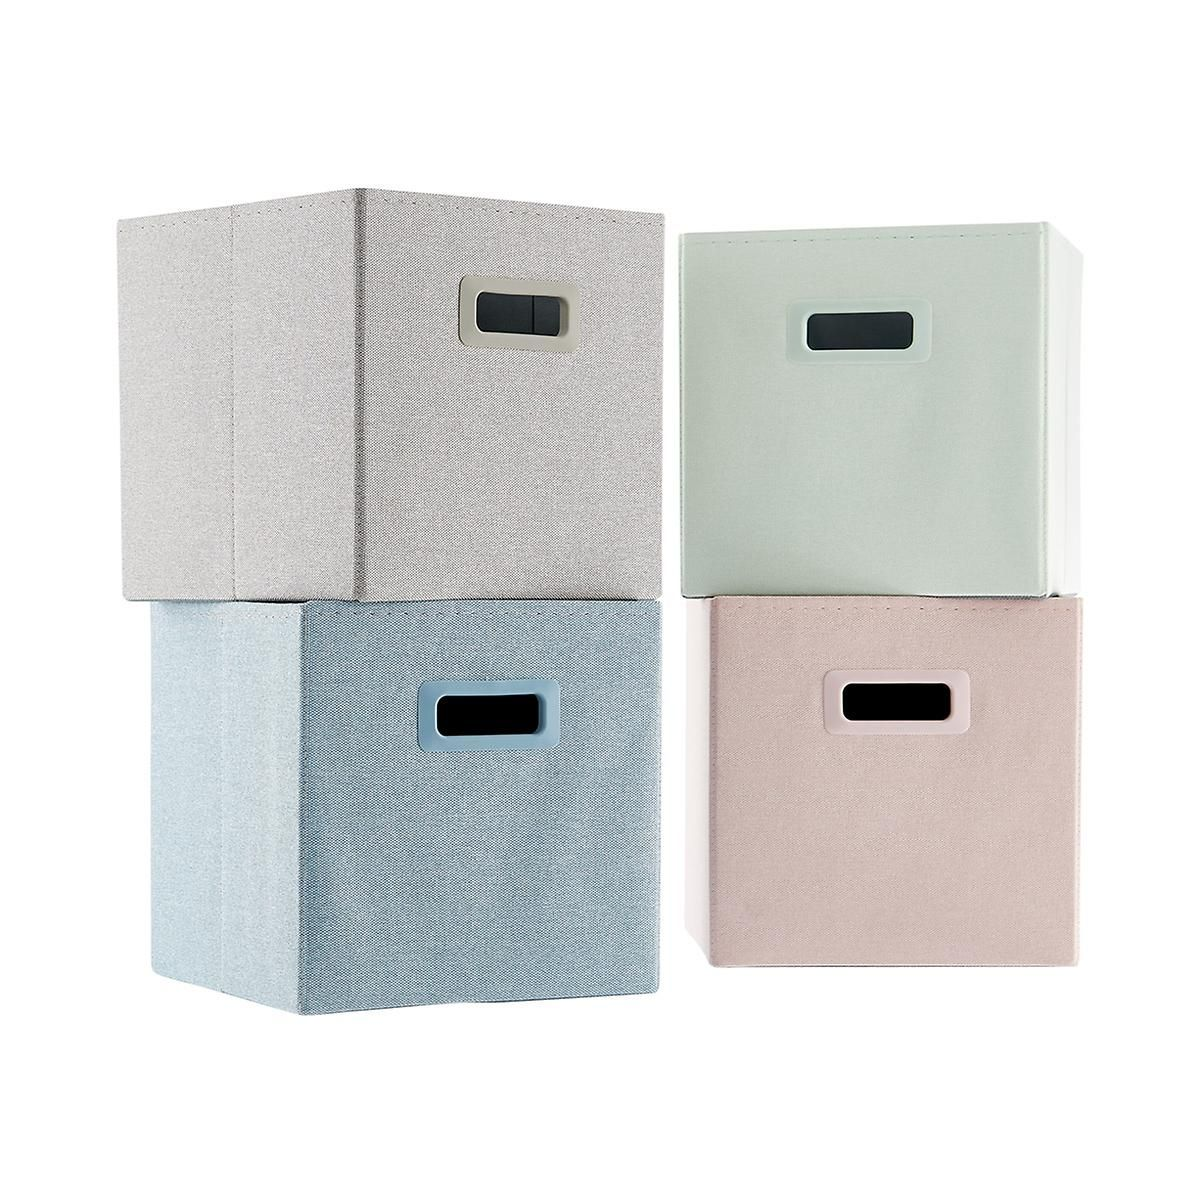 Light Grey Poppin 2x2 Storage Cube Cube Storage Ikea Storage Boxes Fabric Storage Cubes